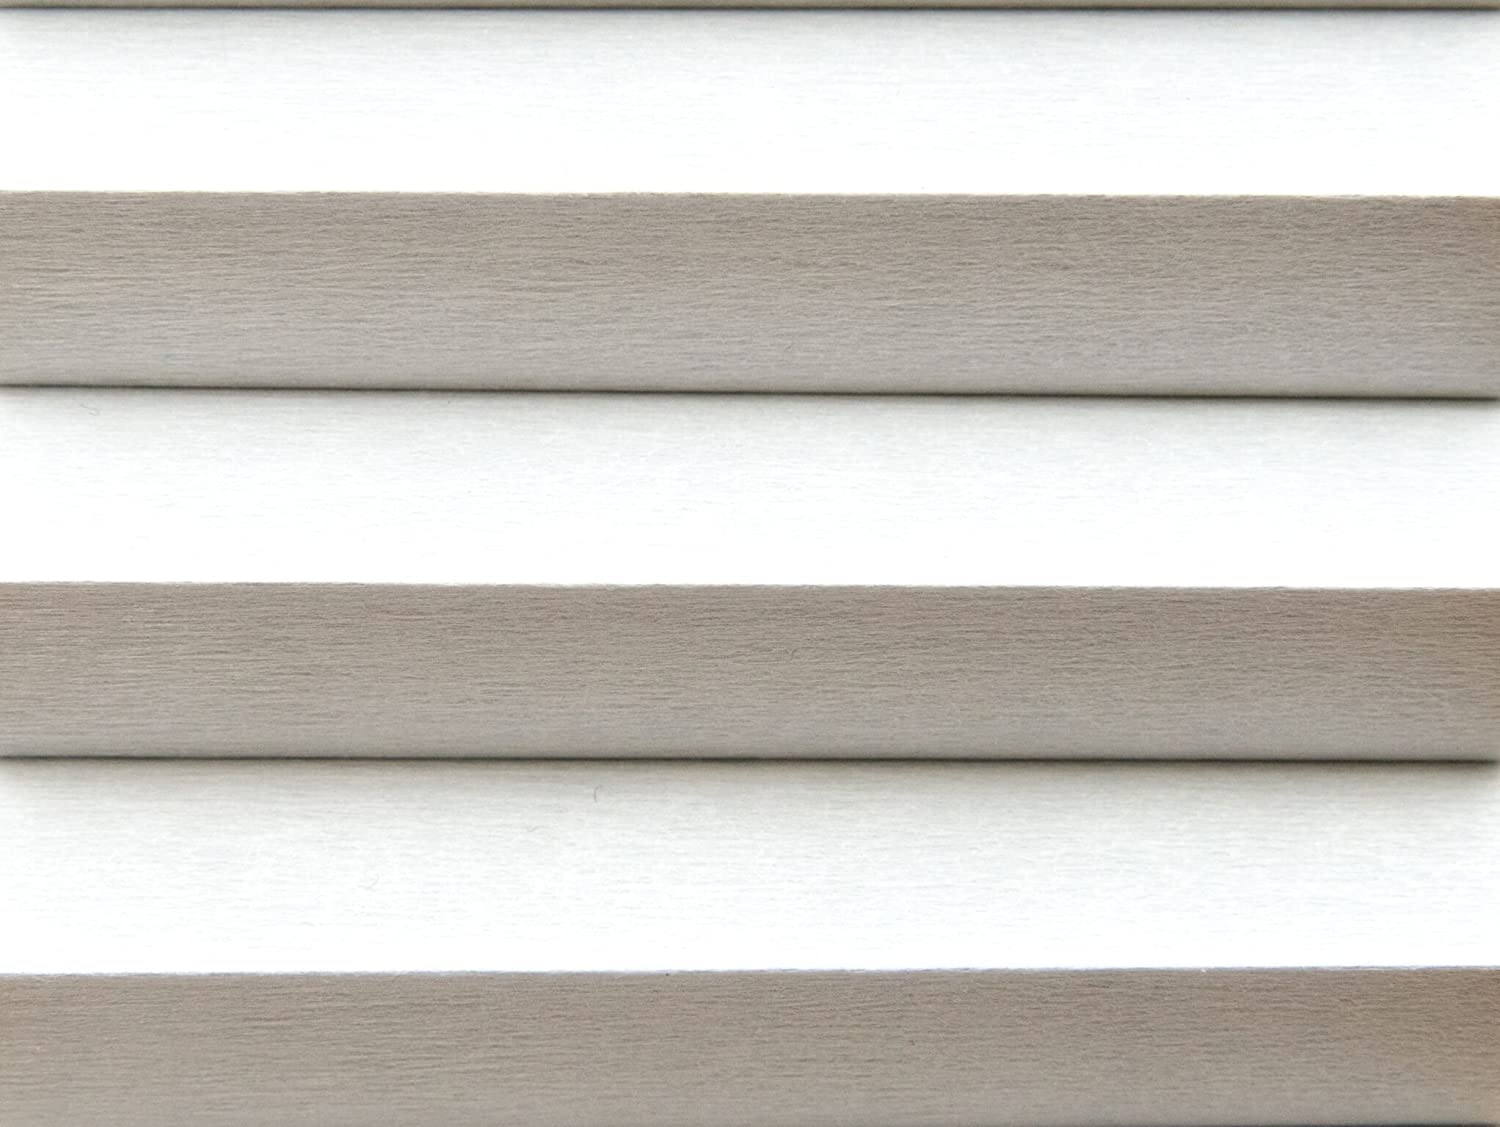 Cloud White Artisan Select No Tools Custom Cordless Cellular Blackout Shades 21 7//8 in x 72 in